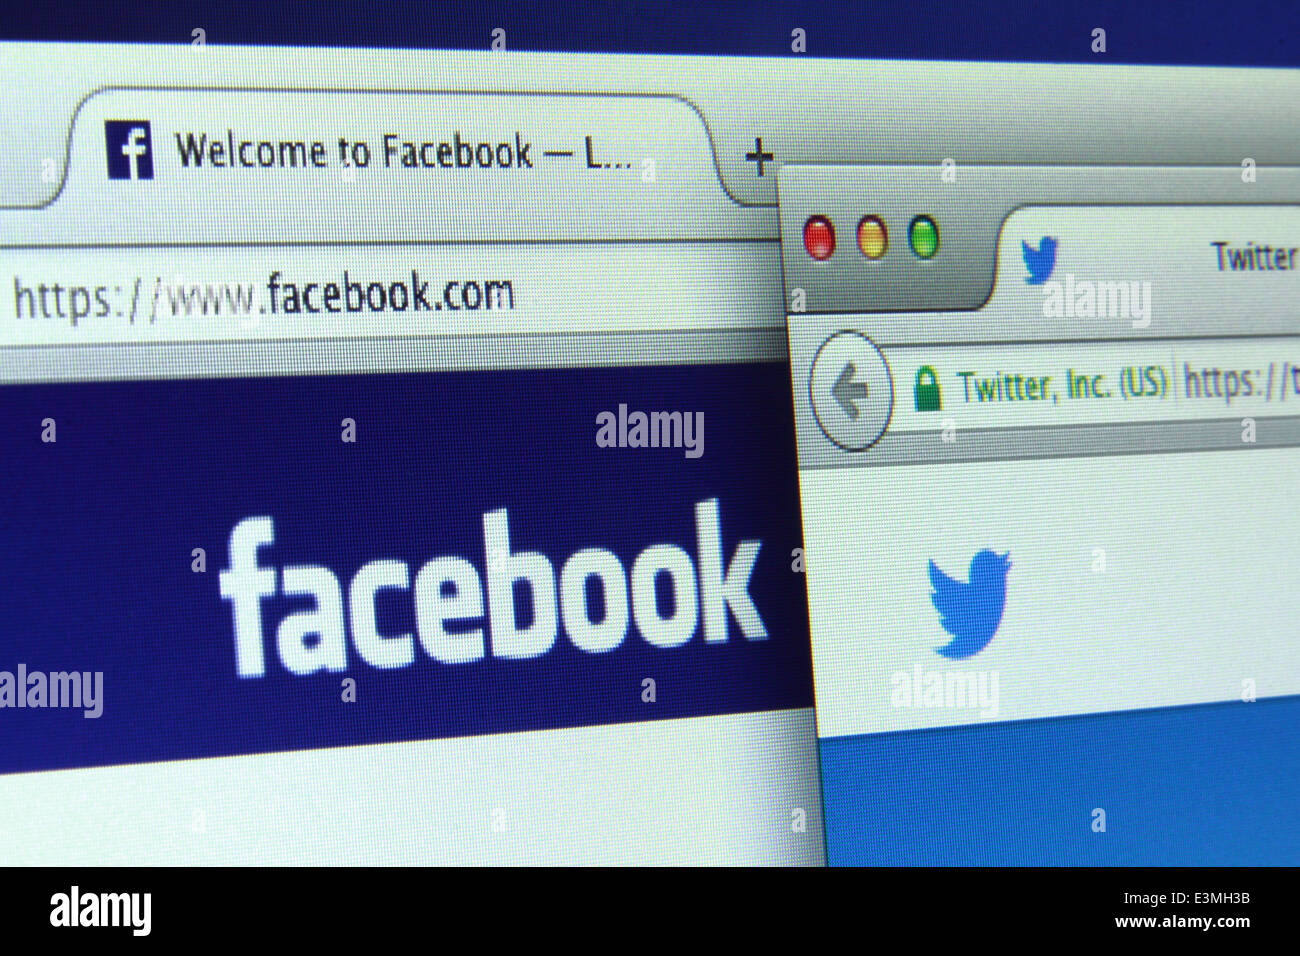 Facebook and Twitter are 2 most popular social networking sites of the world - Stock Image